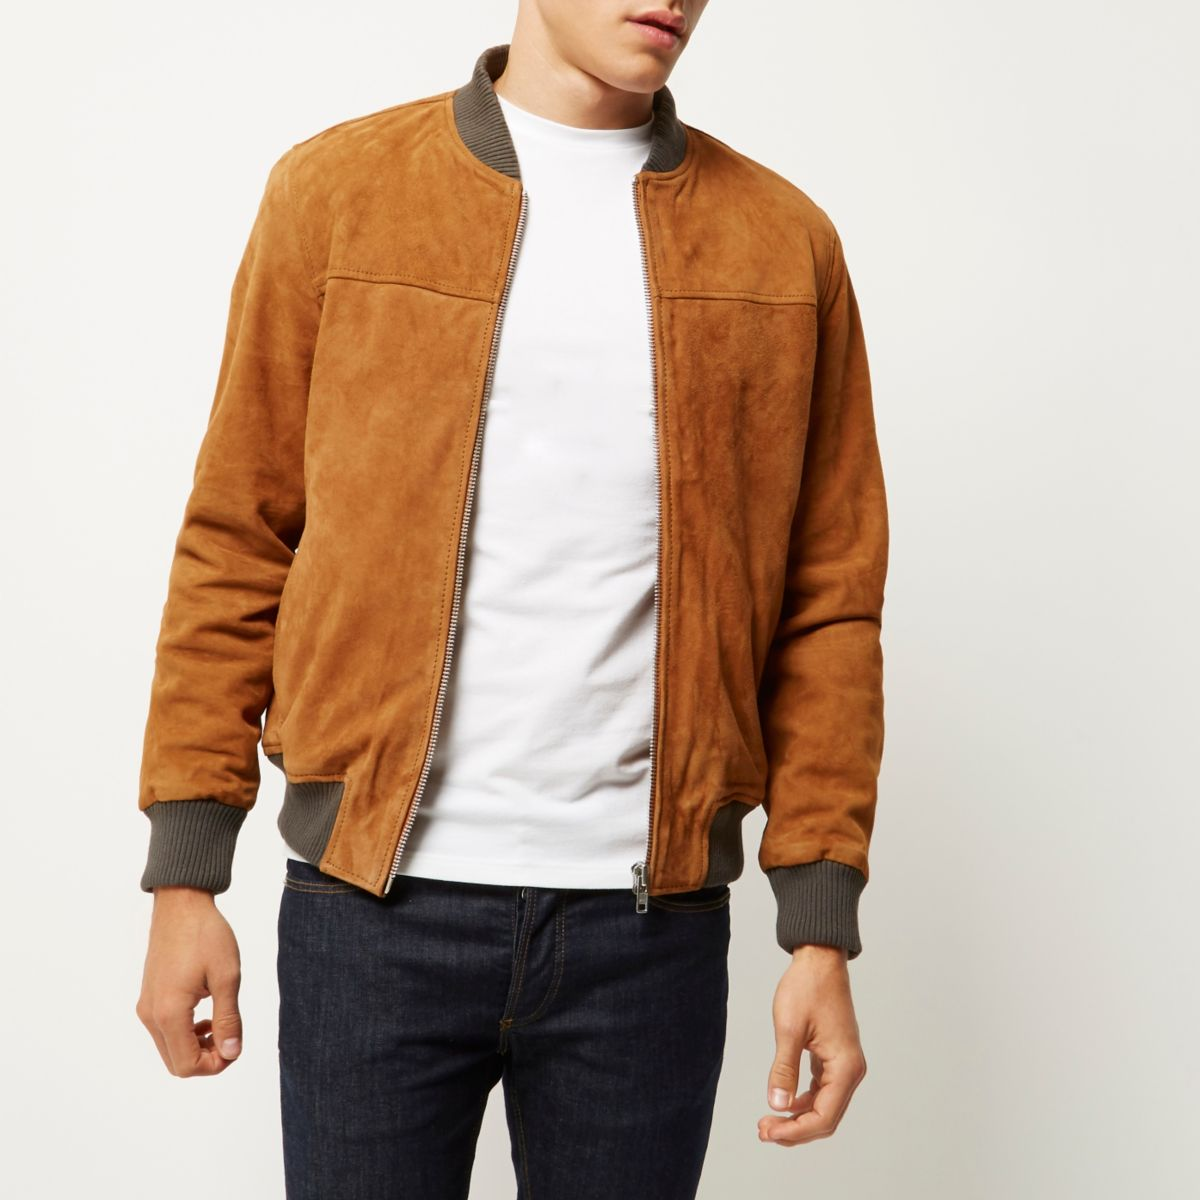 Tan suede bomber jacket - Jackets - Coats & Jackets - men